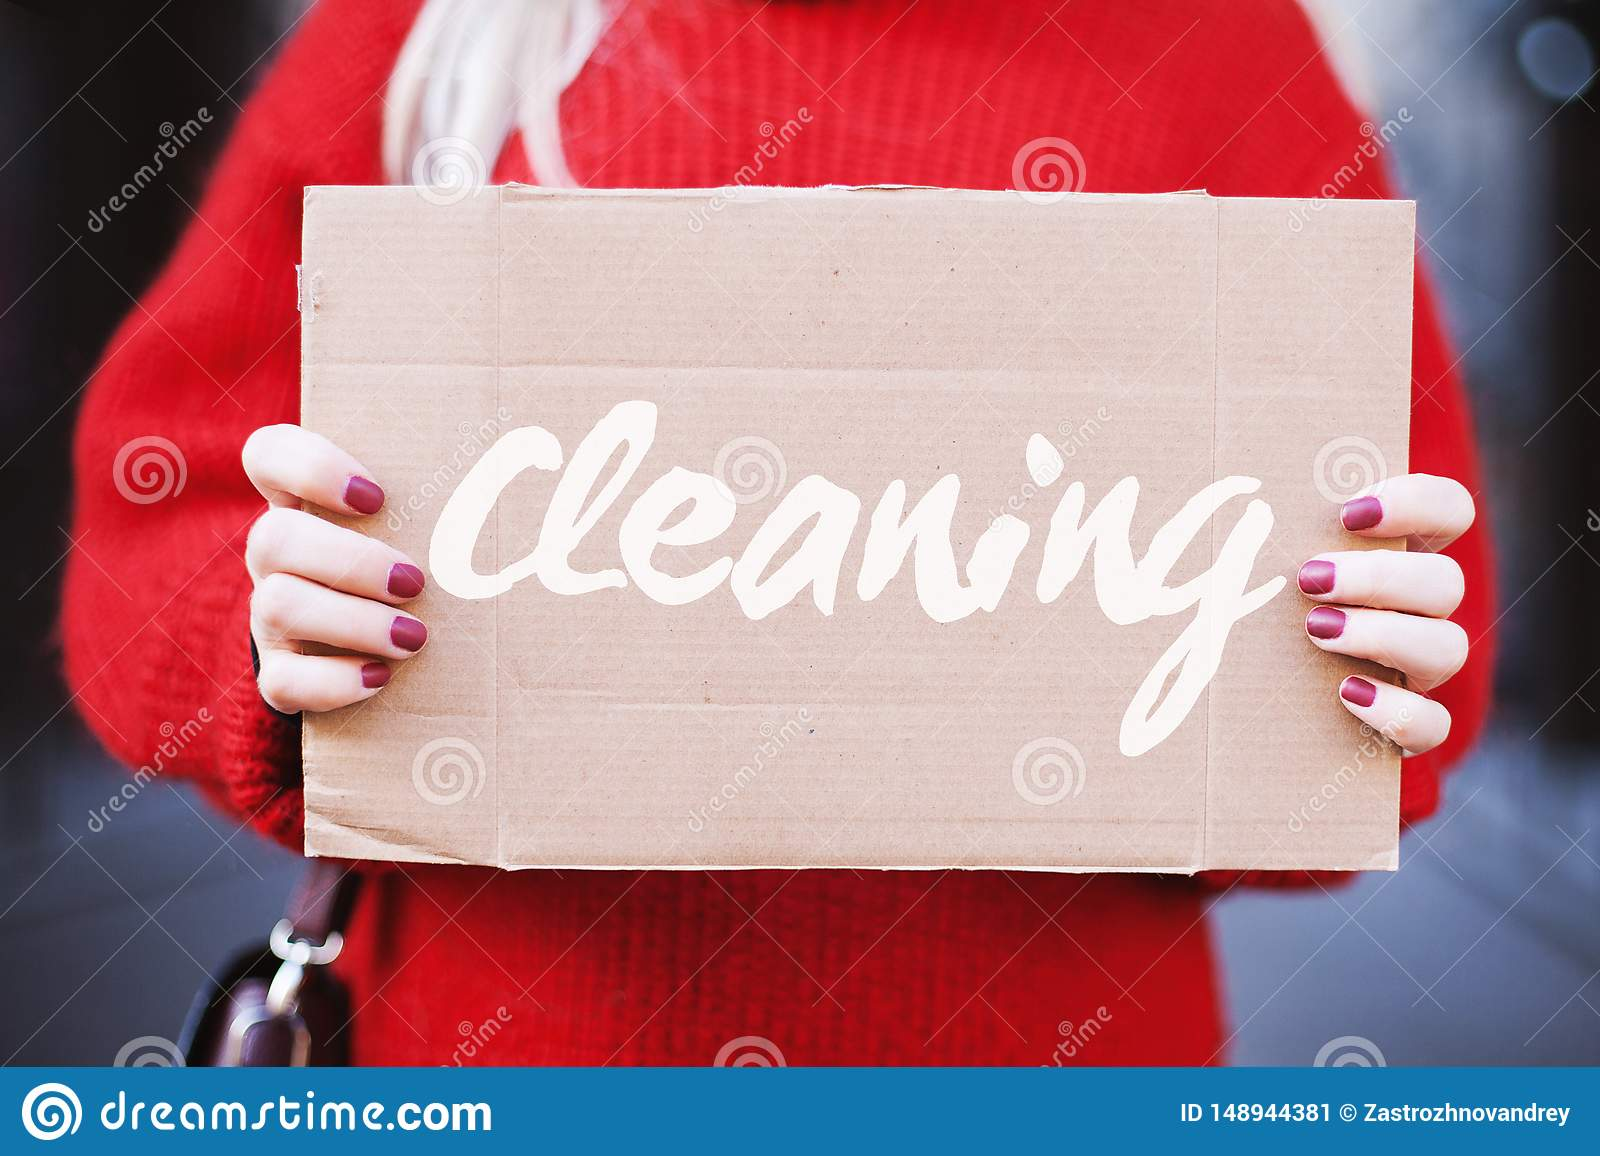 Female hands hold a cardboard tablet with the word `cleaning`, close-up.